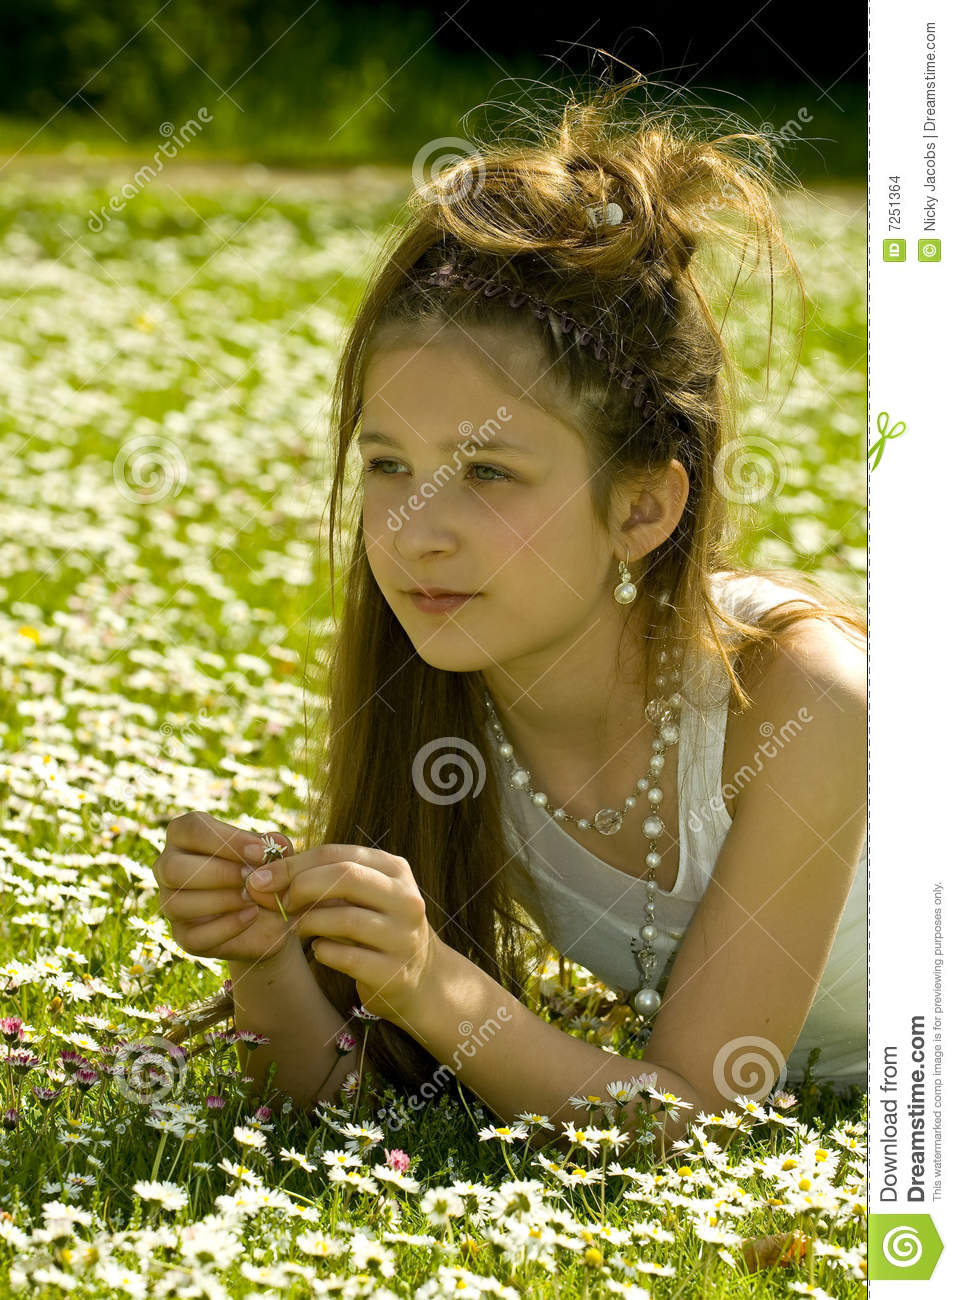 young cute picking flowers park daisy preview